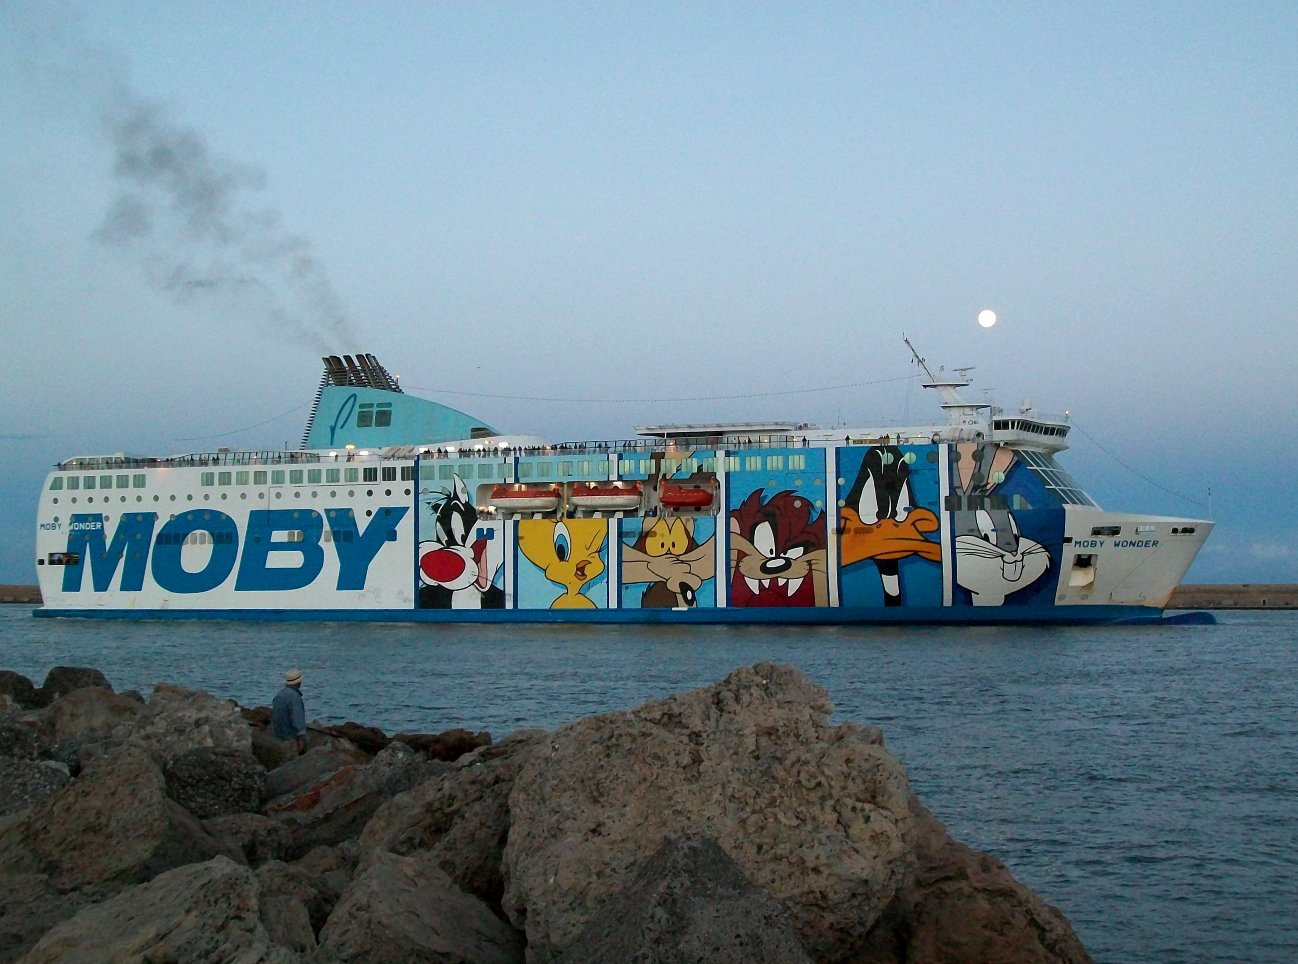 Moby Wonder